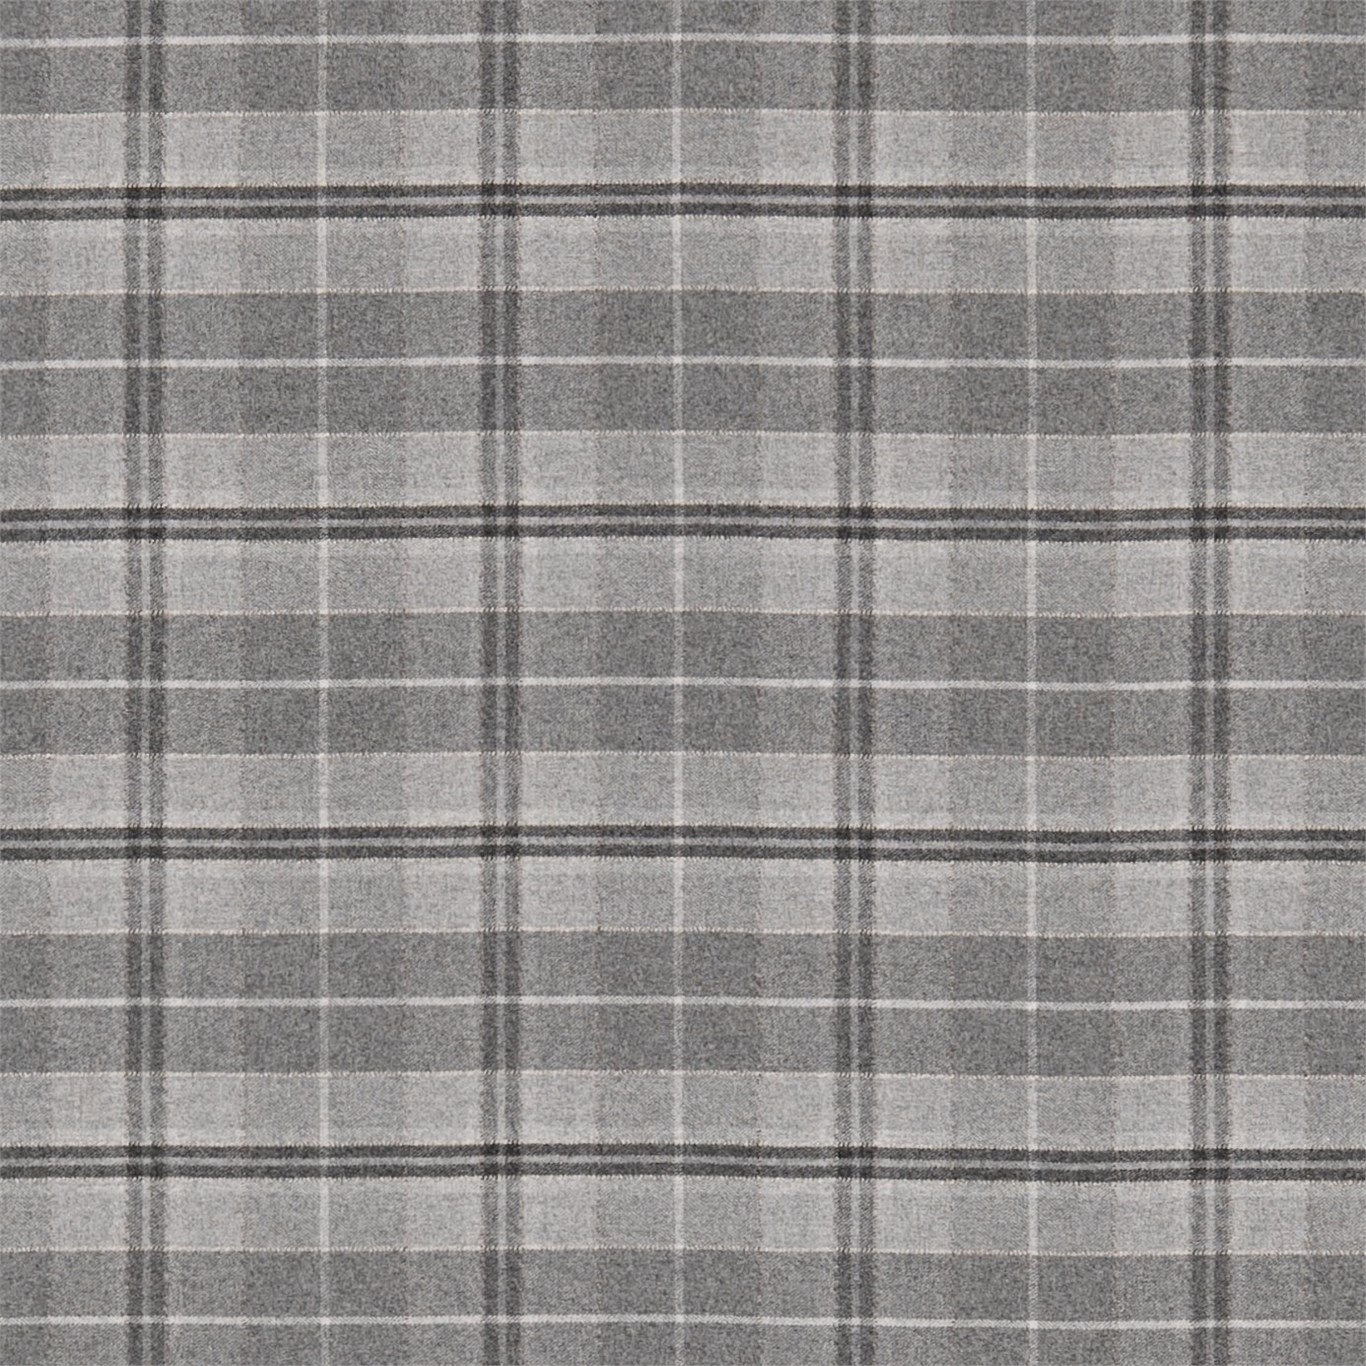 Image of Sanderson Milton Charcoal/Flint Fabric 233249